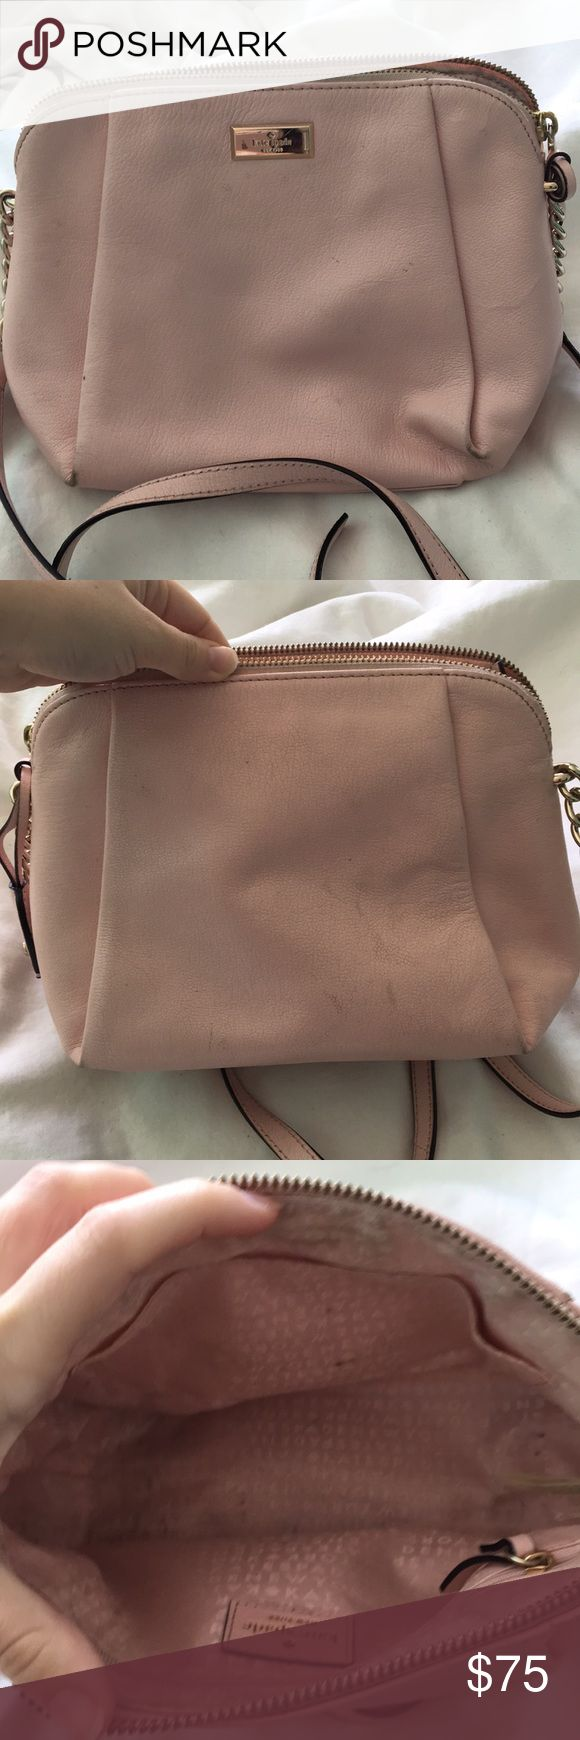 Kate Spade Pink Chain Crossbody Purse From Spring 2016 collection if I recall properly. Heavily used, been told it's easy to clean. All markings are shown in photo. kate spade Bags Crossbody Bags